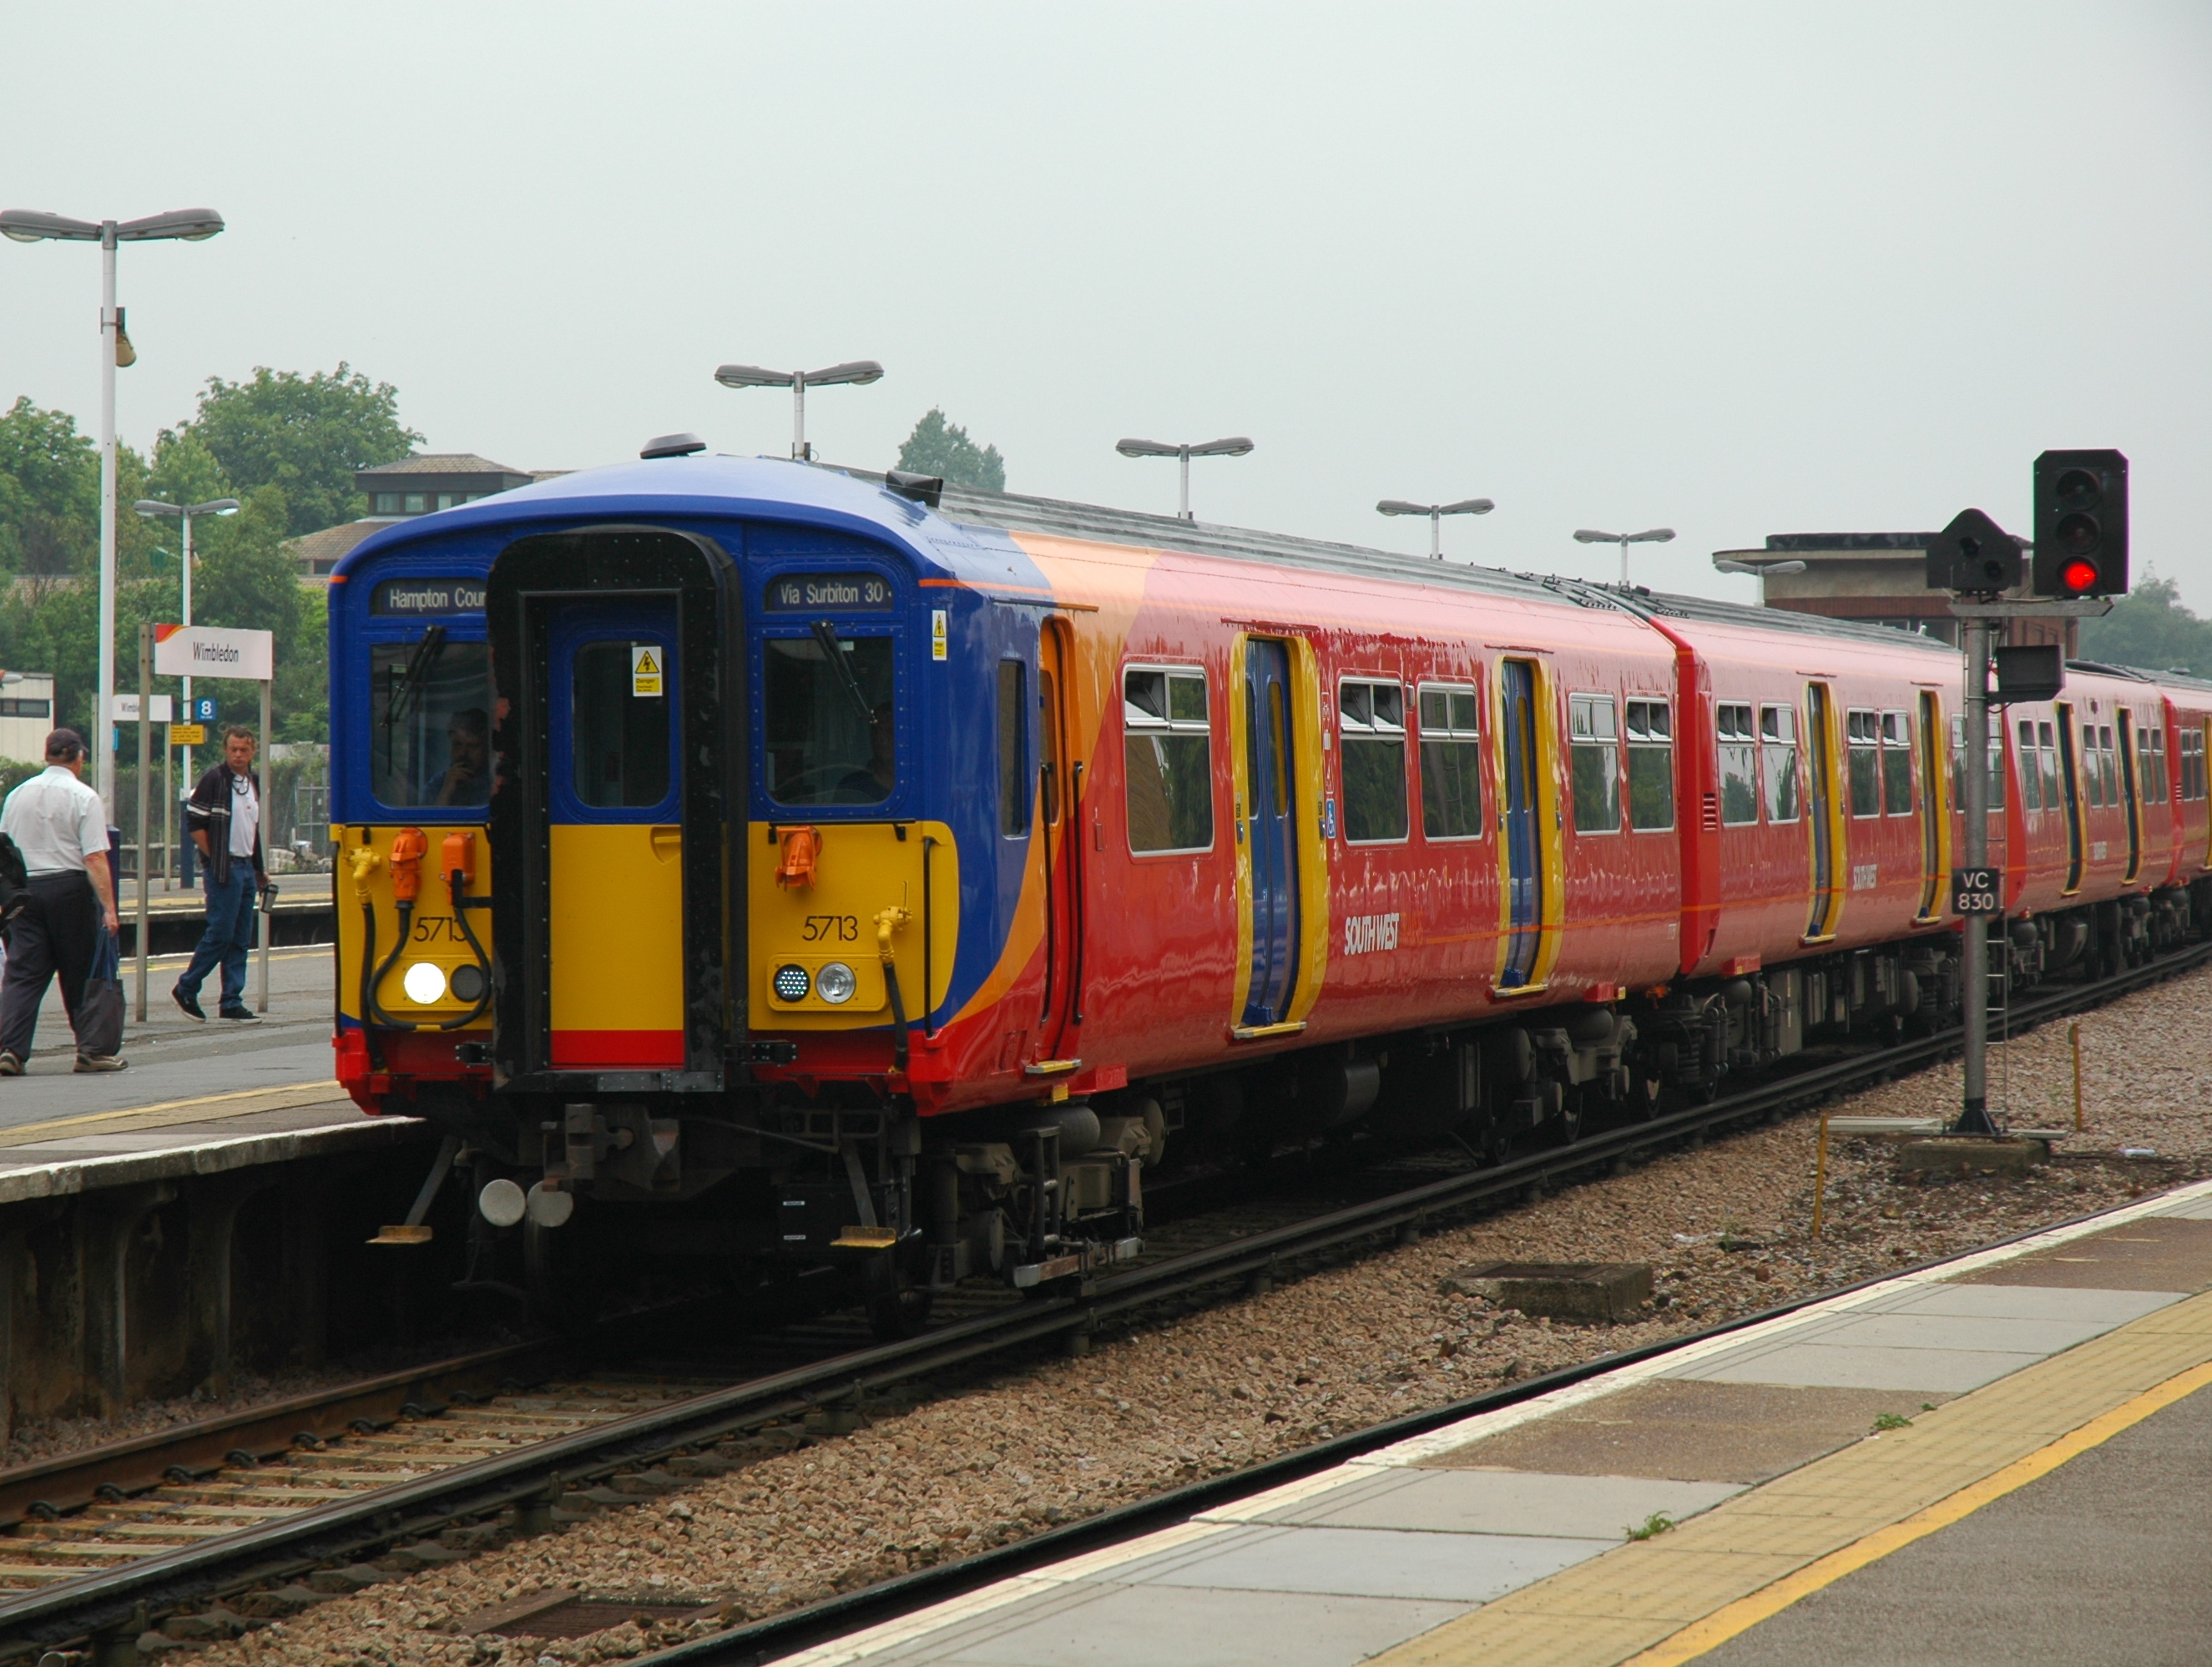 File:SWT Class 455 refurbished.jpg